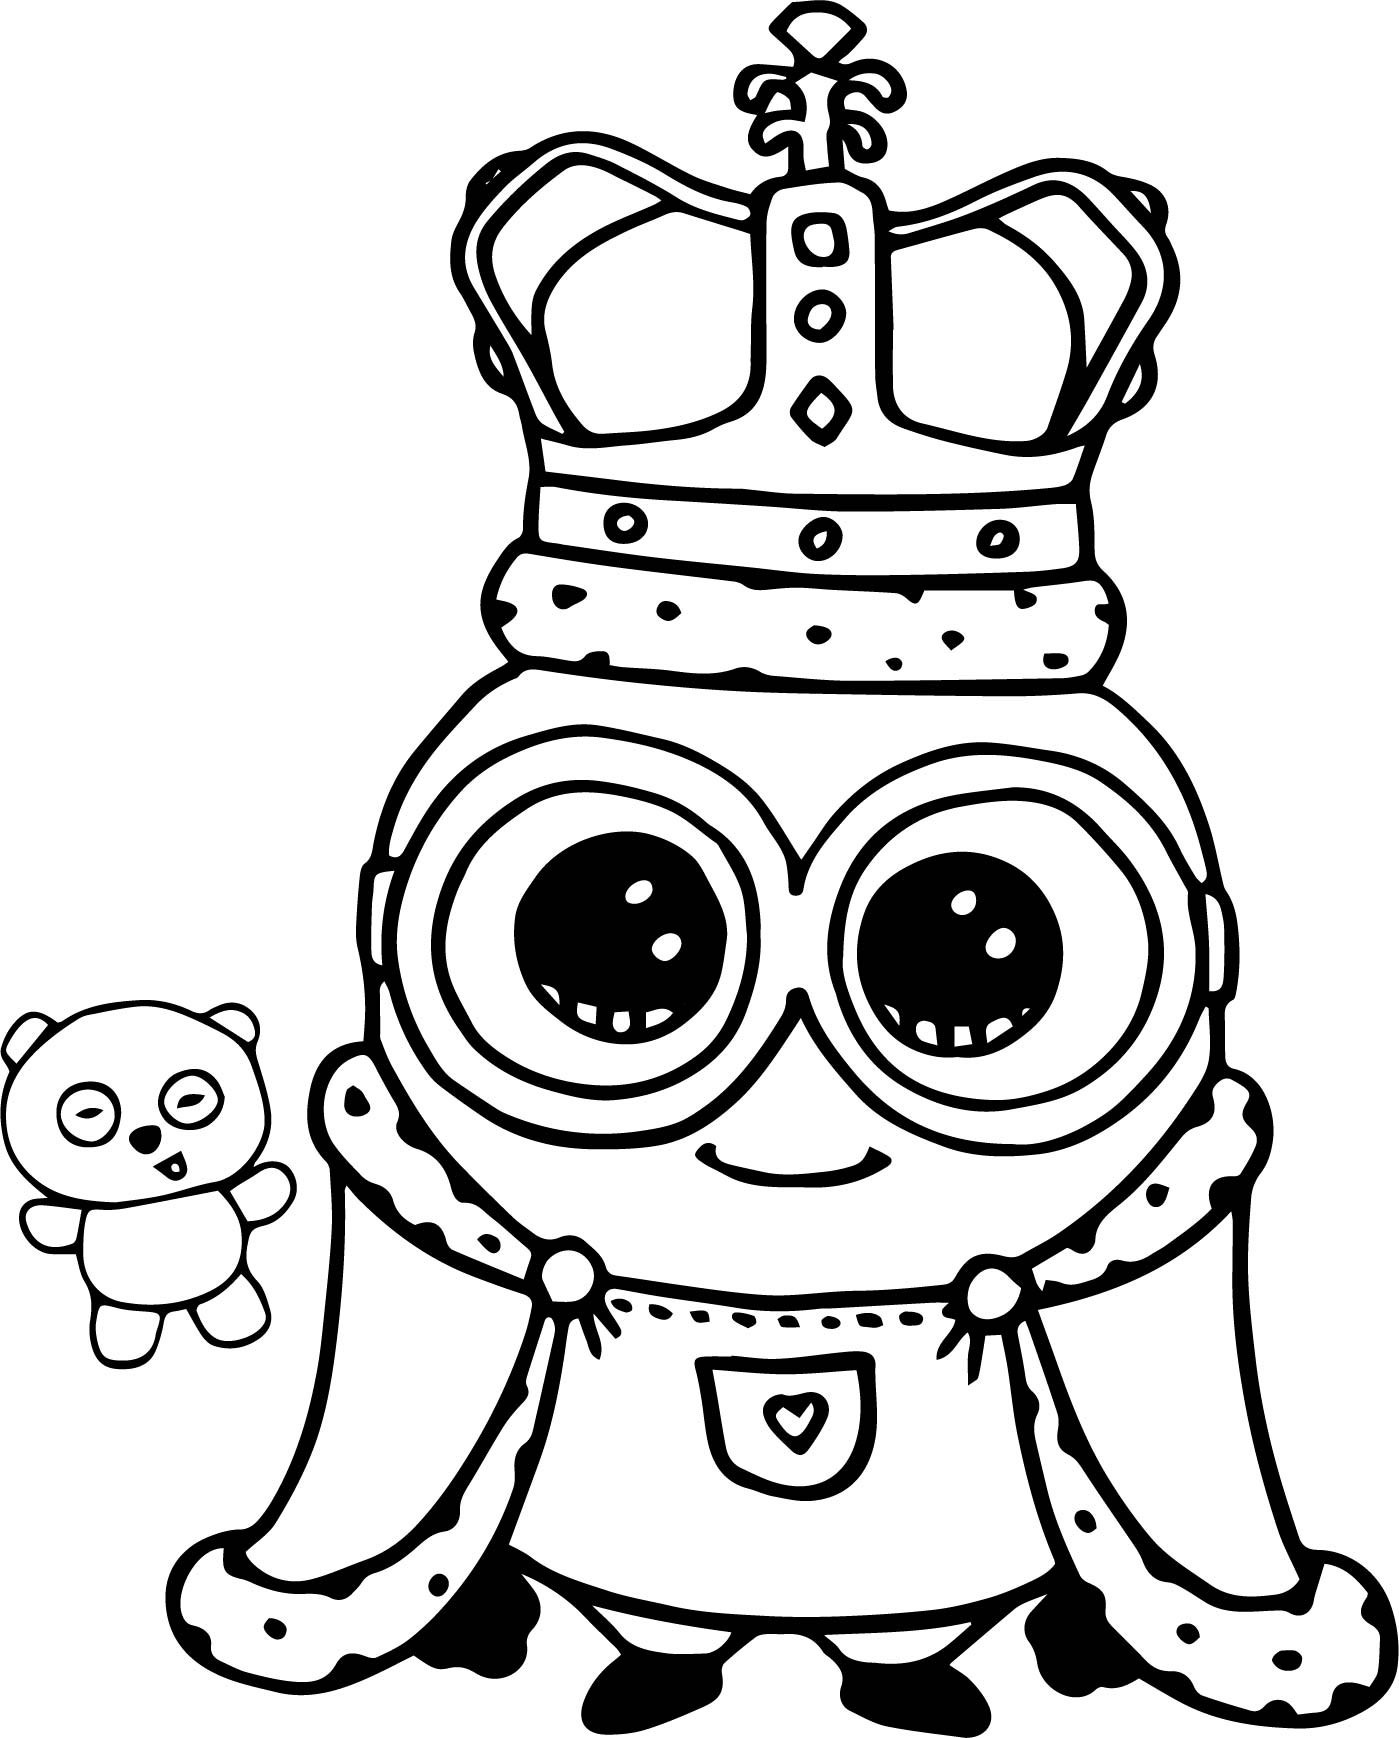 coloring worksheets cute cute coloring pages best coloring pages for kids cute coloring worksheets